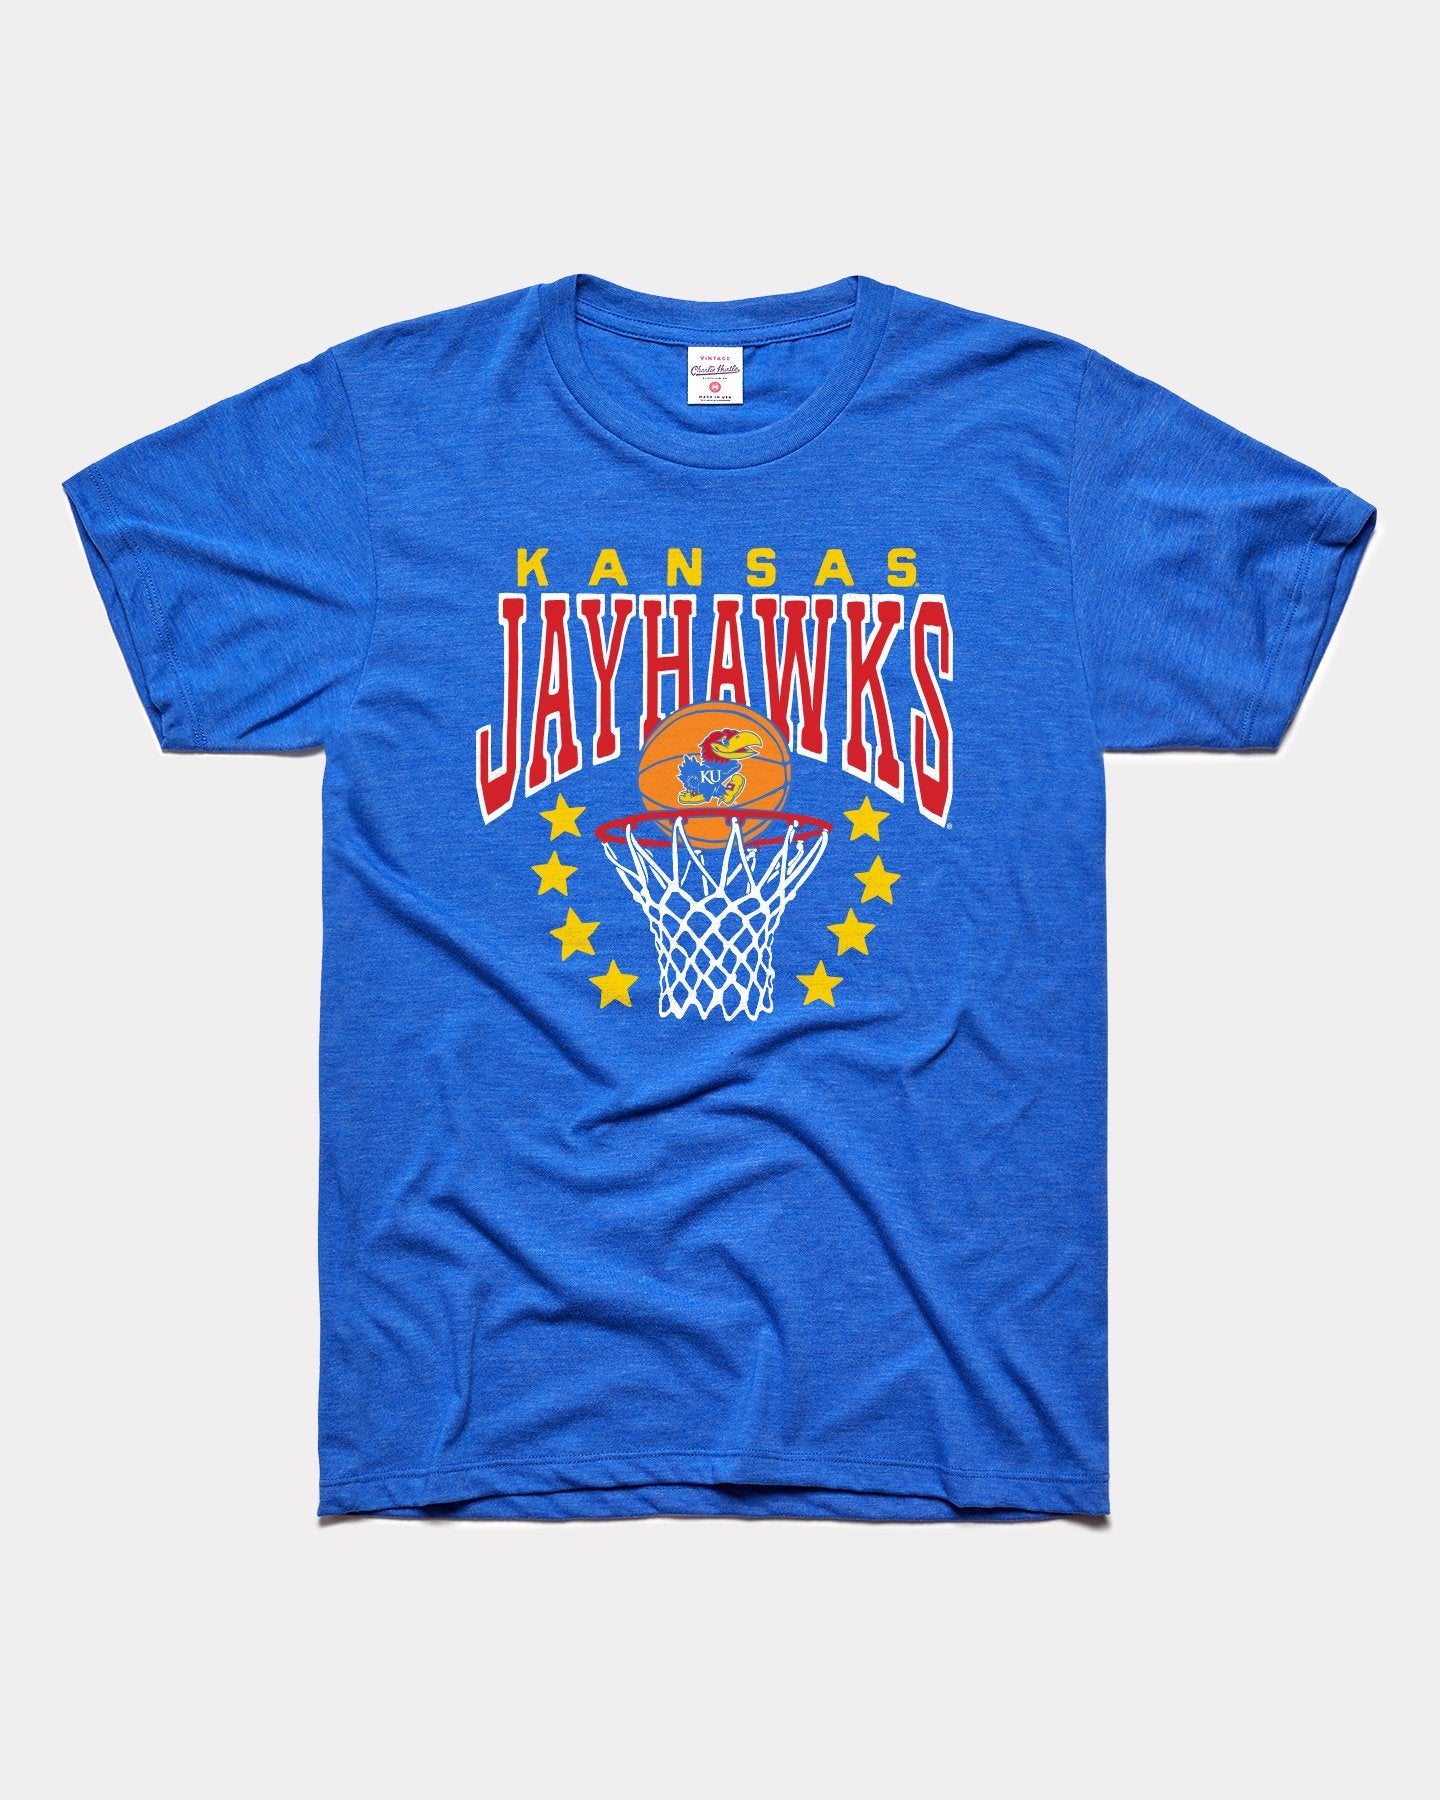 Royal Blue University of Kansas Jayhawks Basketball Vintage T-Shirt